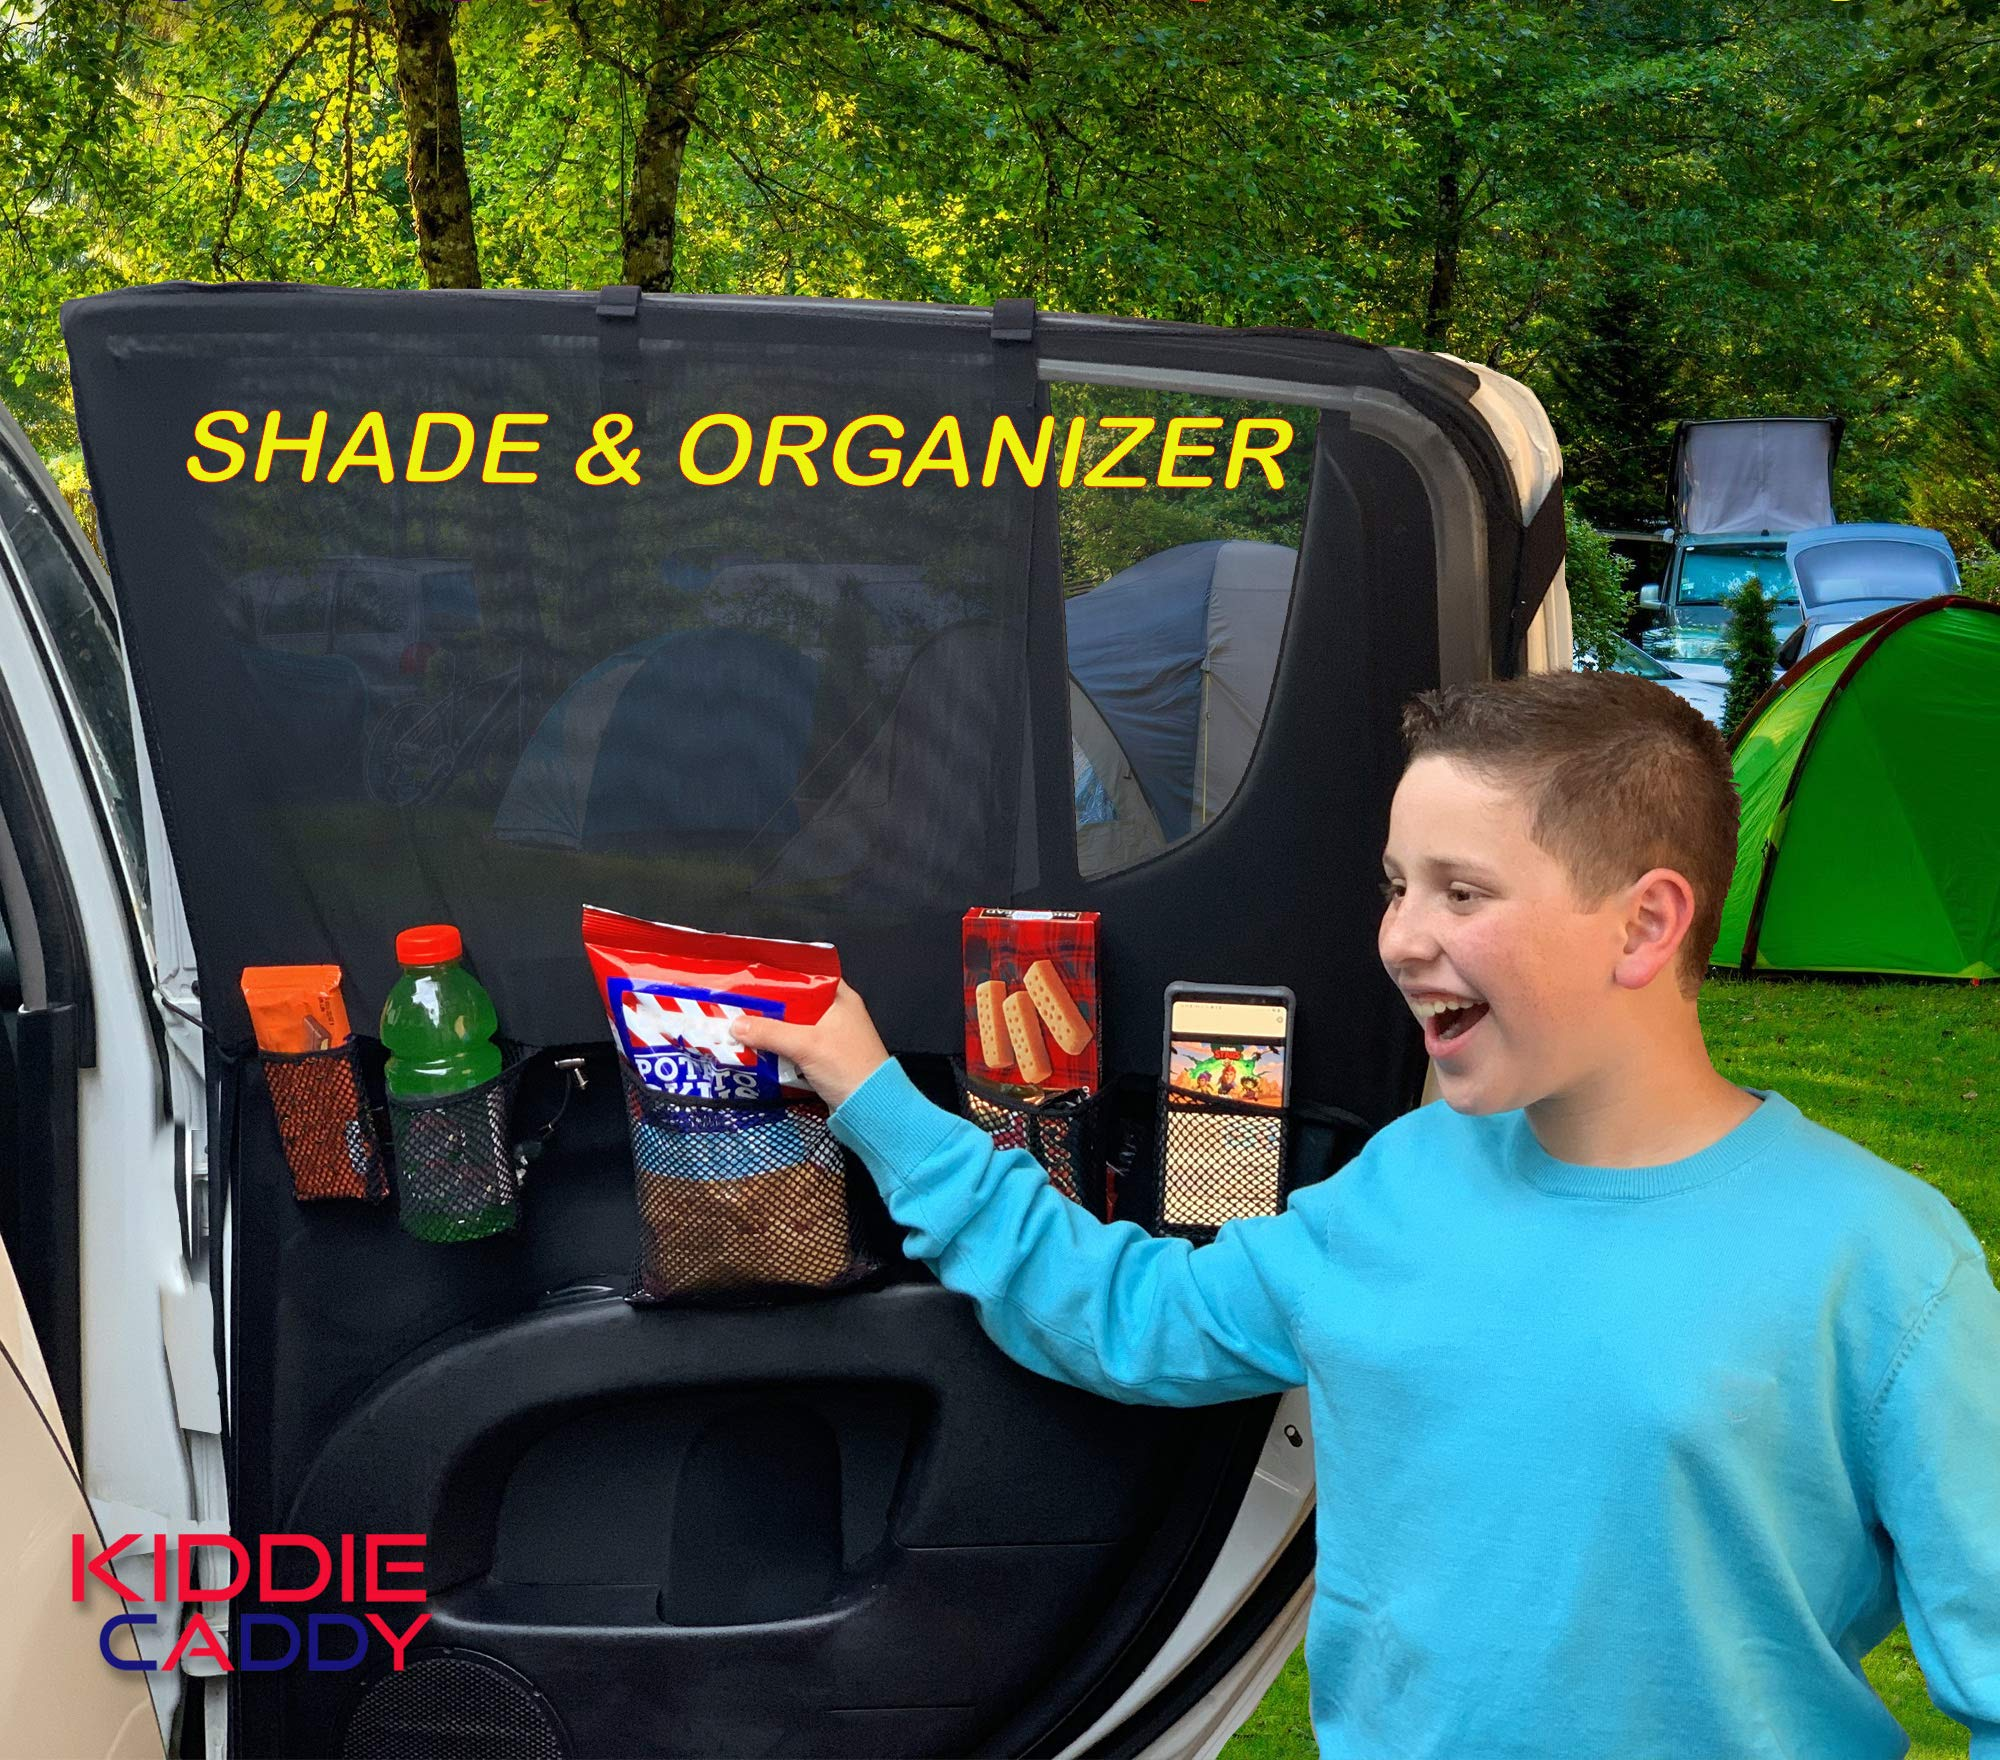 Kiddie Caddy [Patent-Pending] Mesh Car Window Shade and Back Seat Organizer for Kids and Baby Reachable Storage for Toys & Snacks Block UV Rays with 2-Pack Rear Window Sun Shades by  Homey Marketing